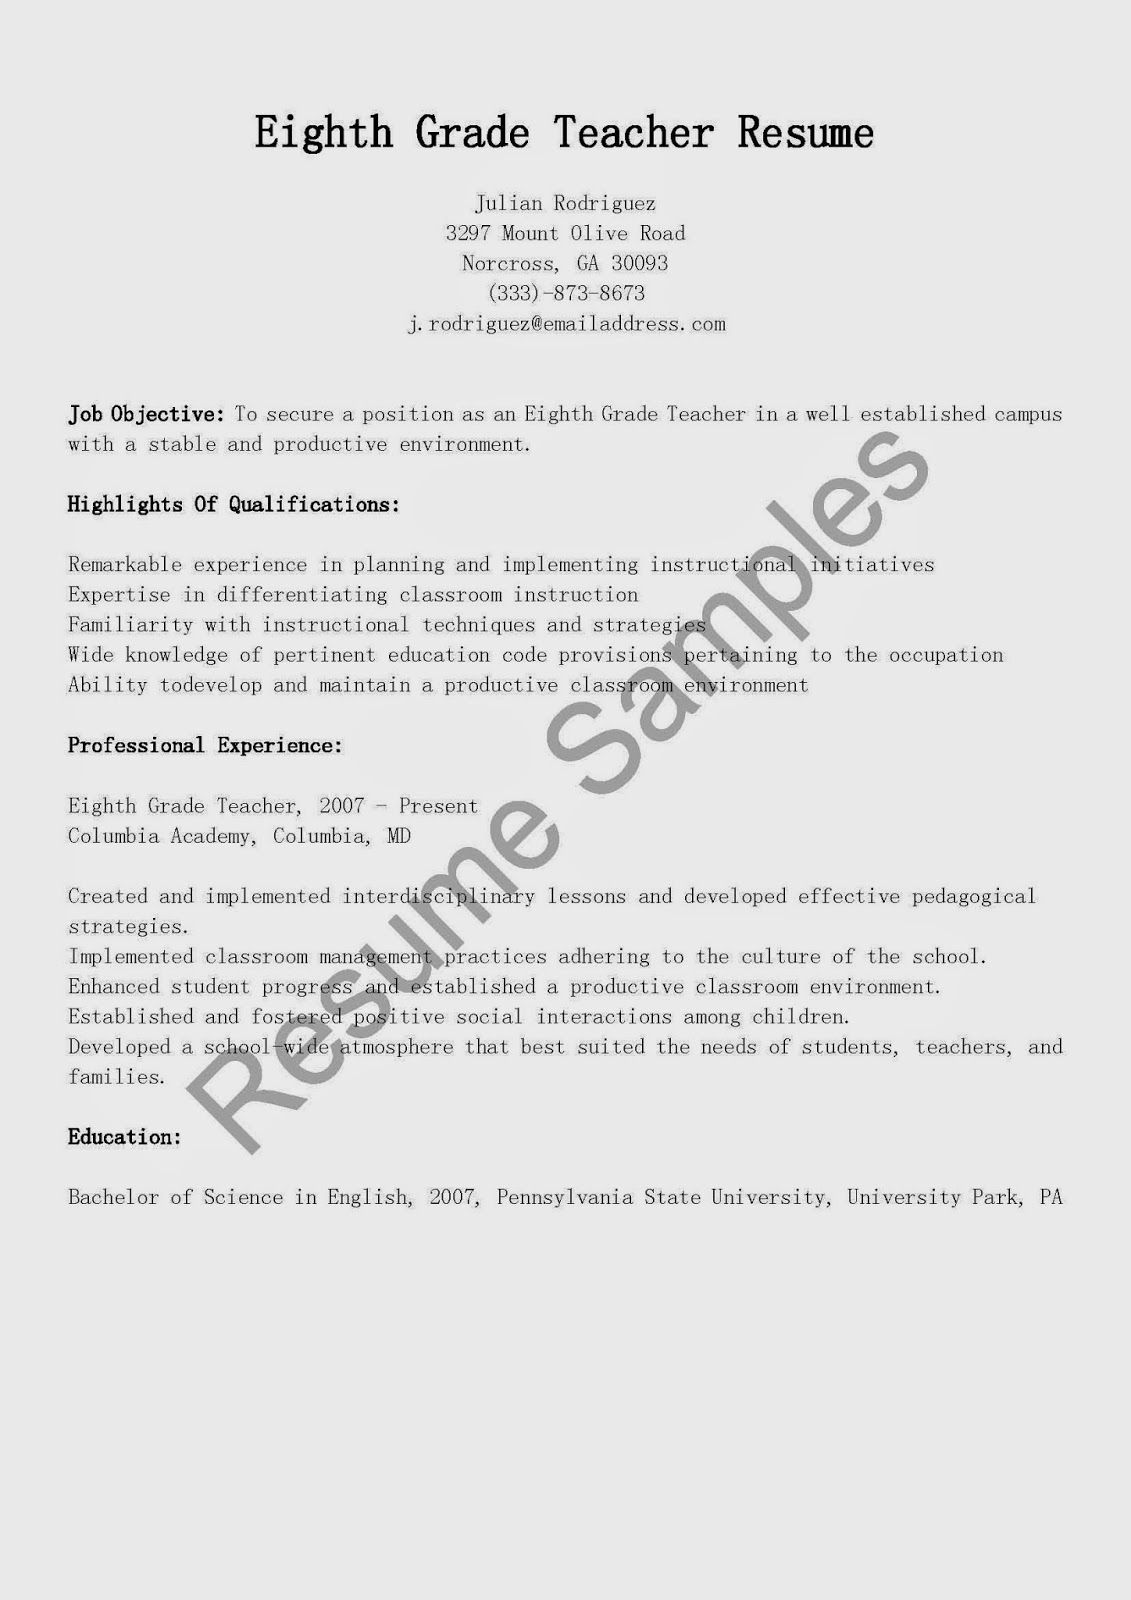 Custom resume writing 8th grade